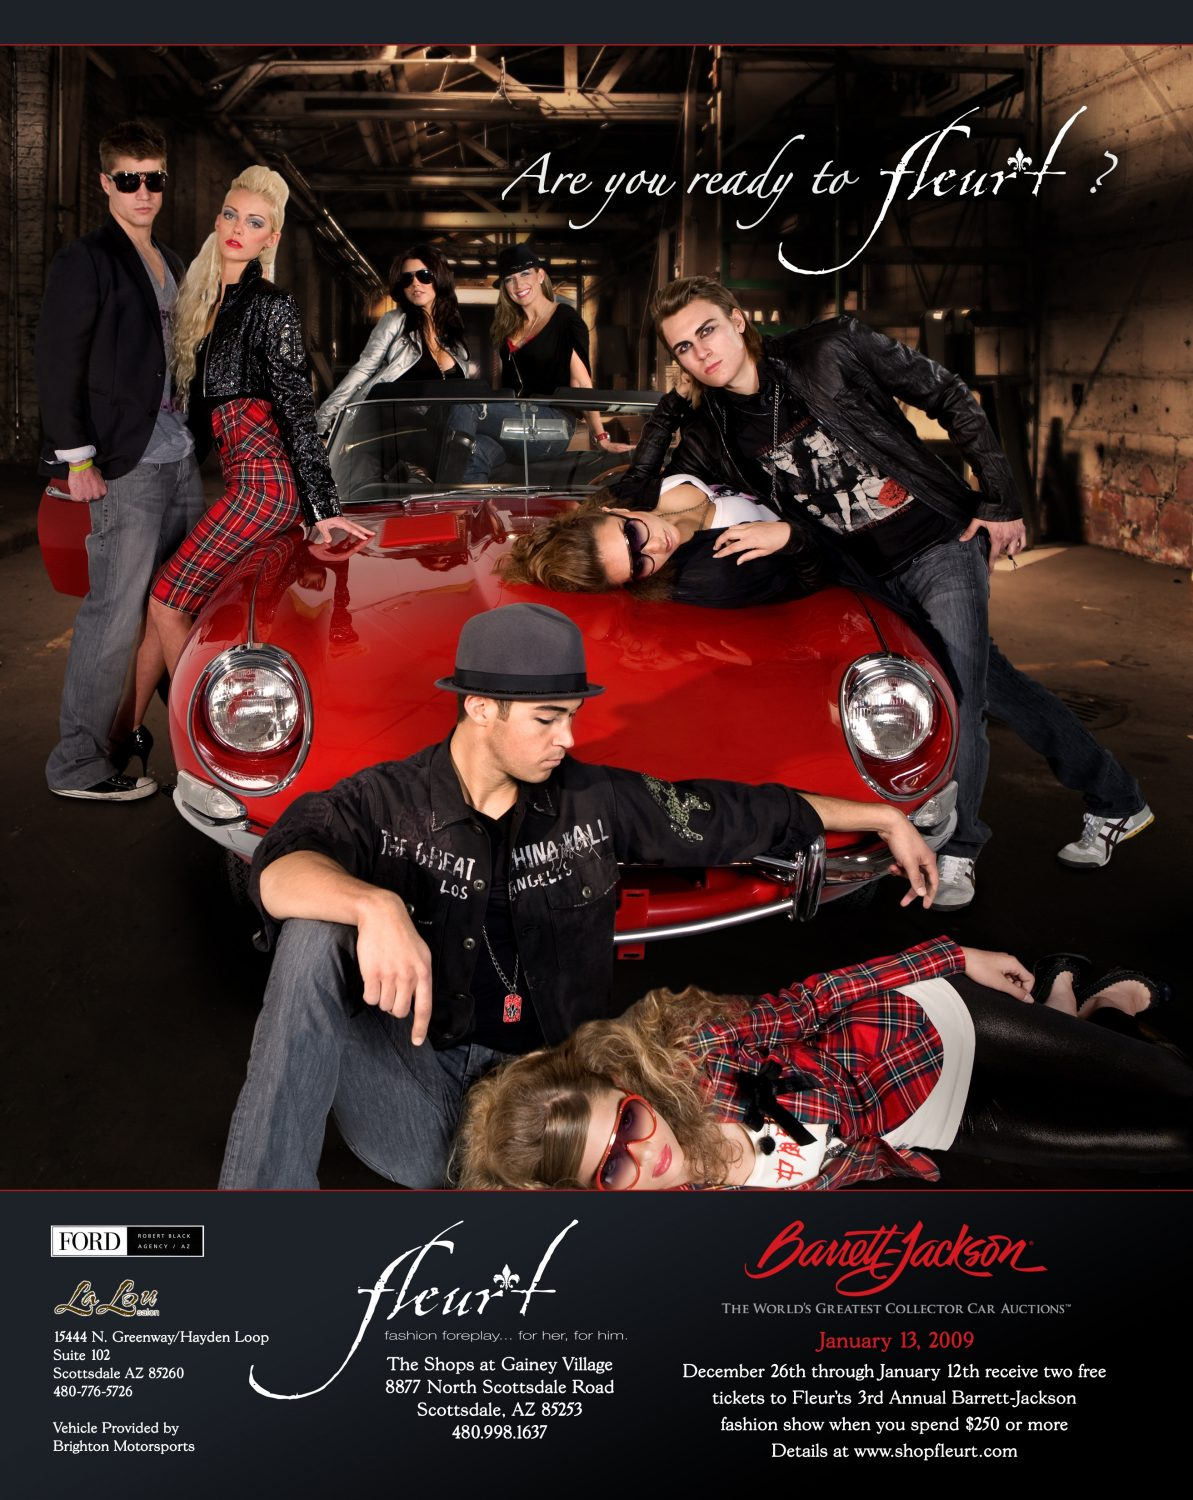 Fleur't Boutique's 3rd Annual Barrett-Jackson Fashion Show